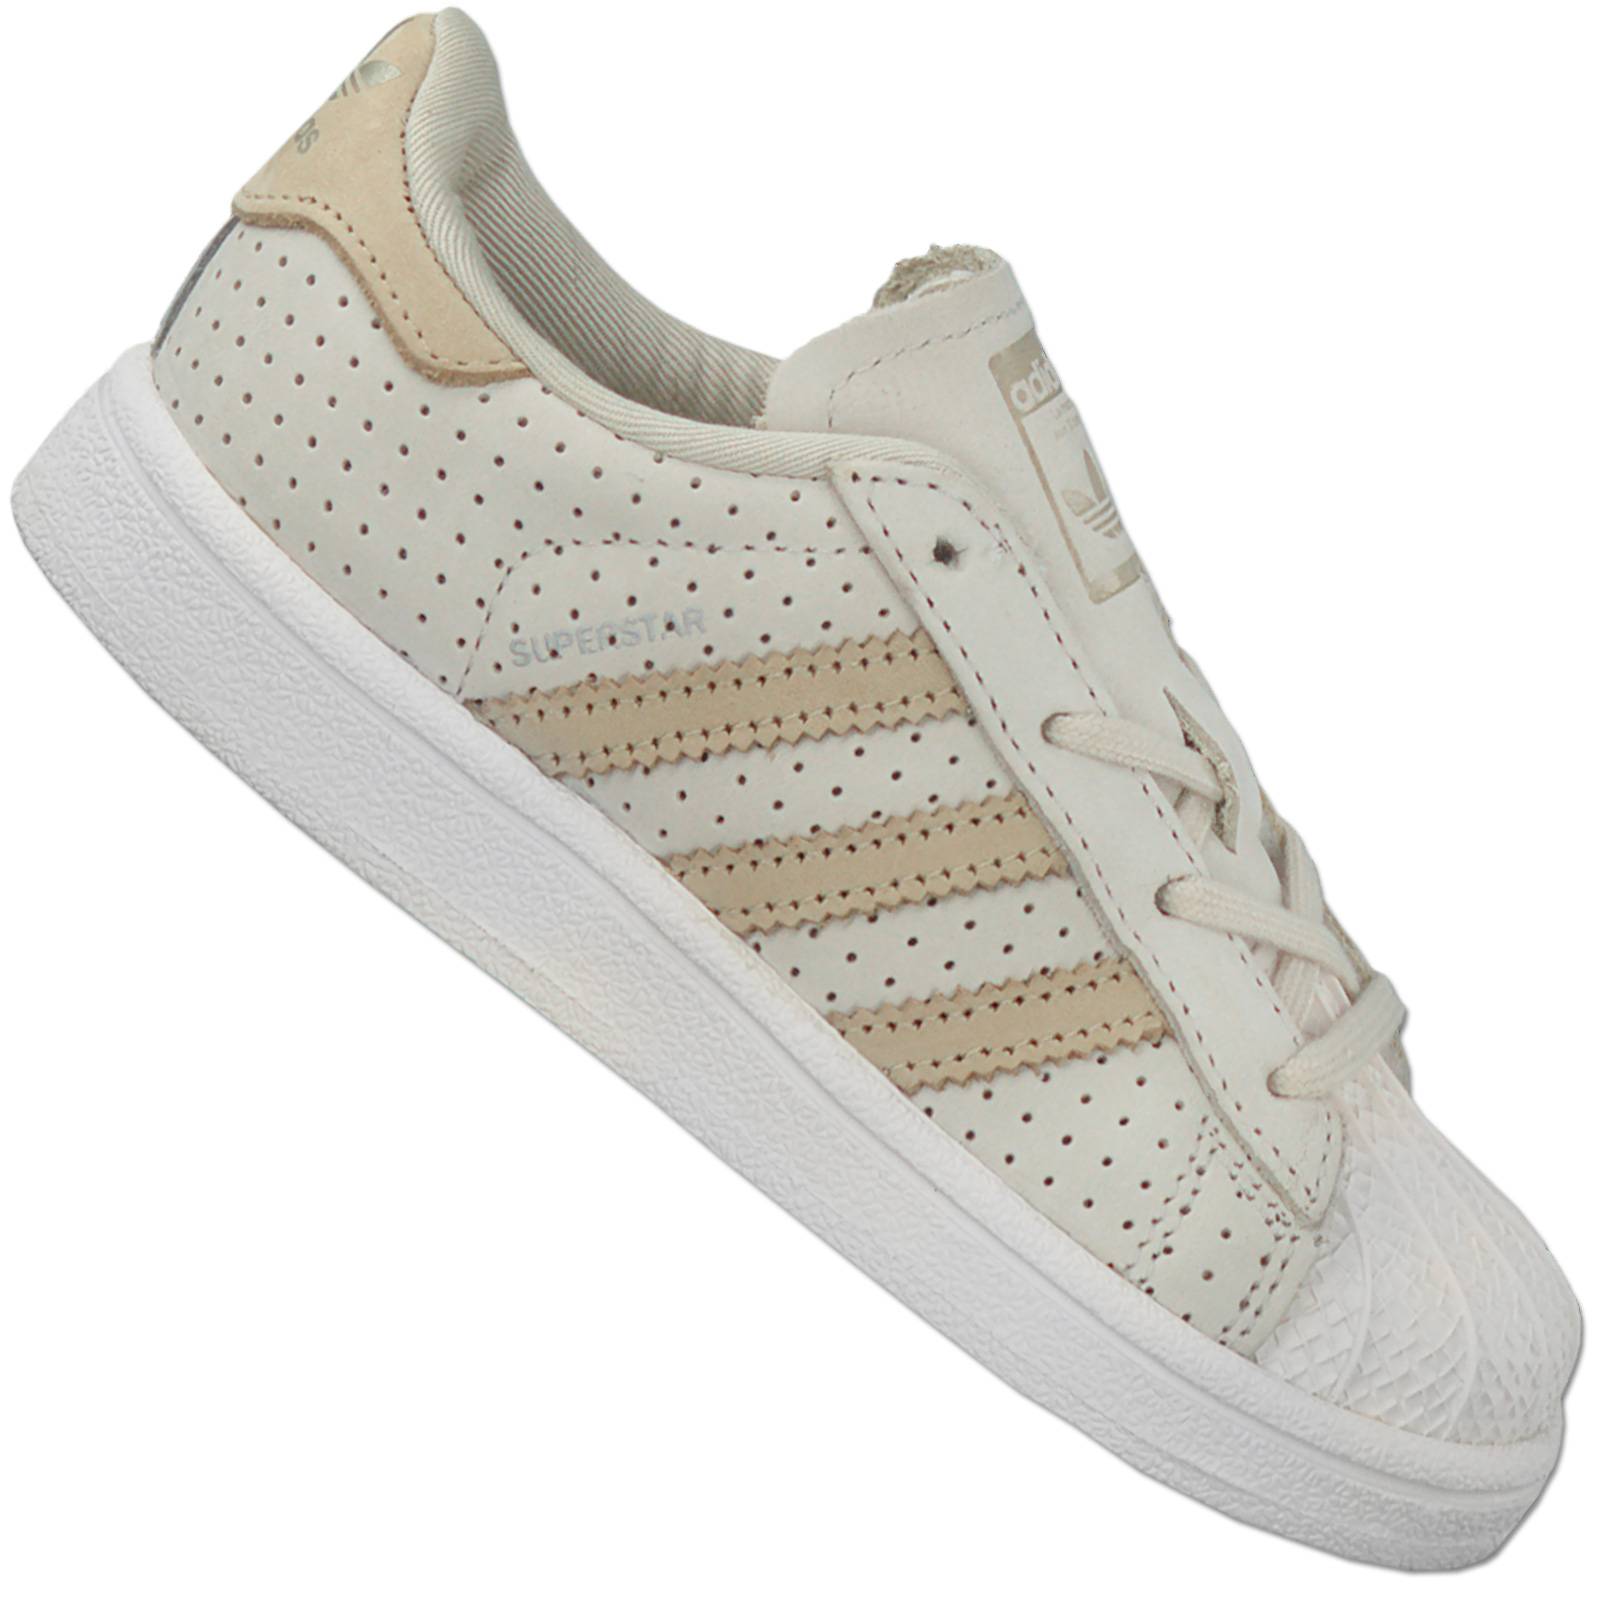 Details about Adidas Originals Superstar Fashion Baby Walker Shoes Kids Sneaker Beige